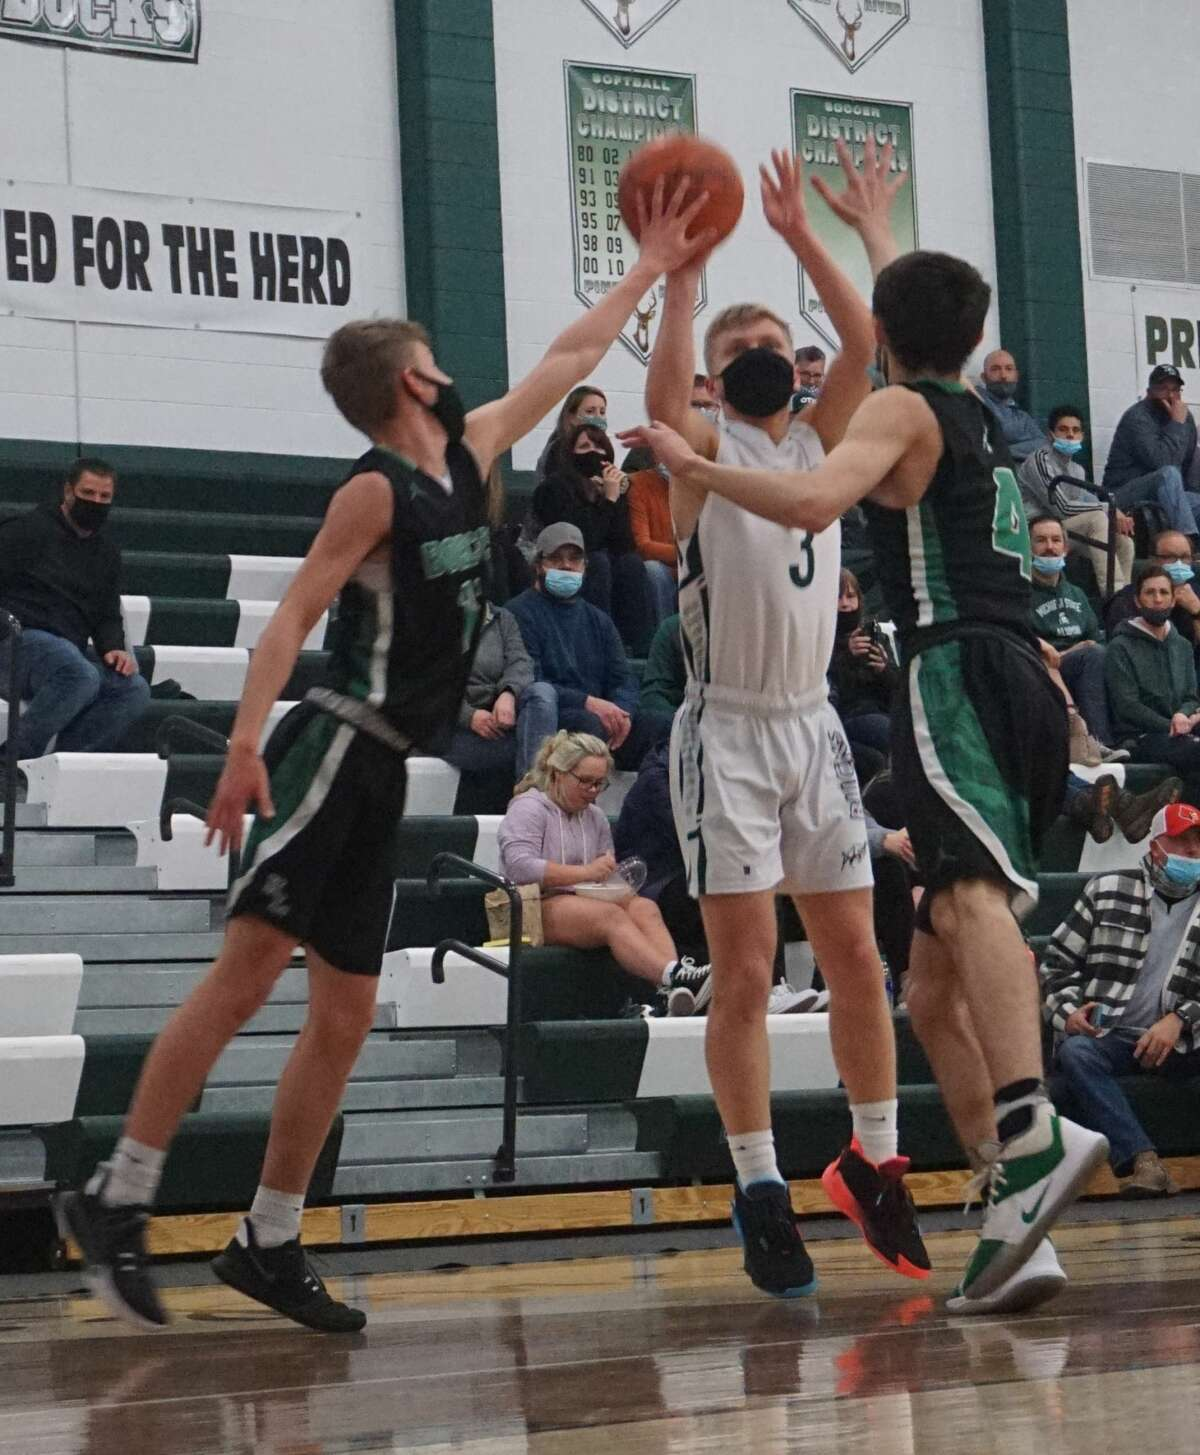 The Pine River boys' basketball team was defeated on its home court against Houghton Lake on Wednesday evening.